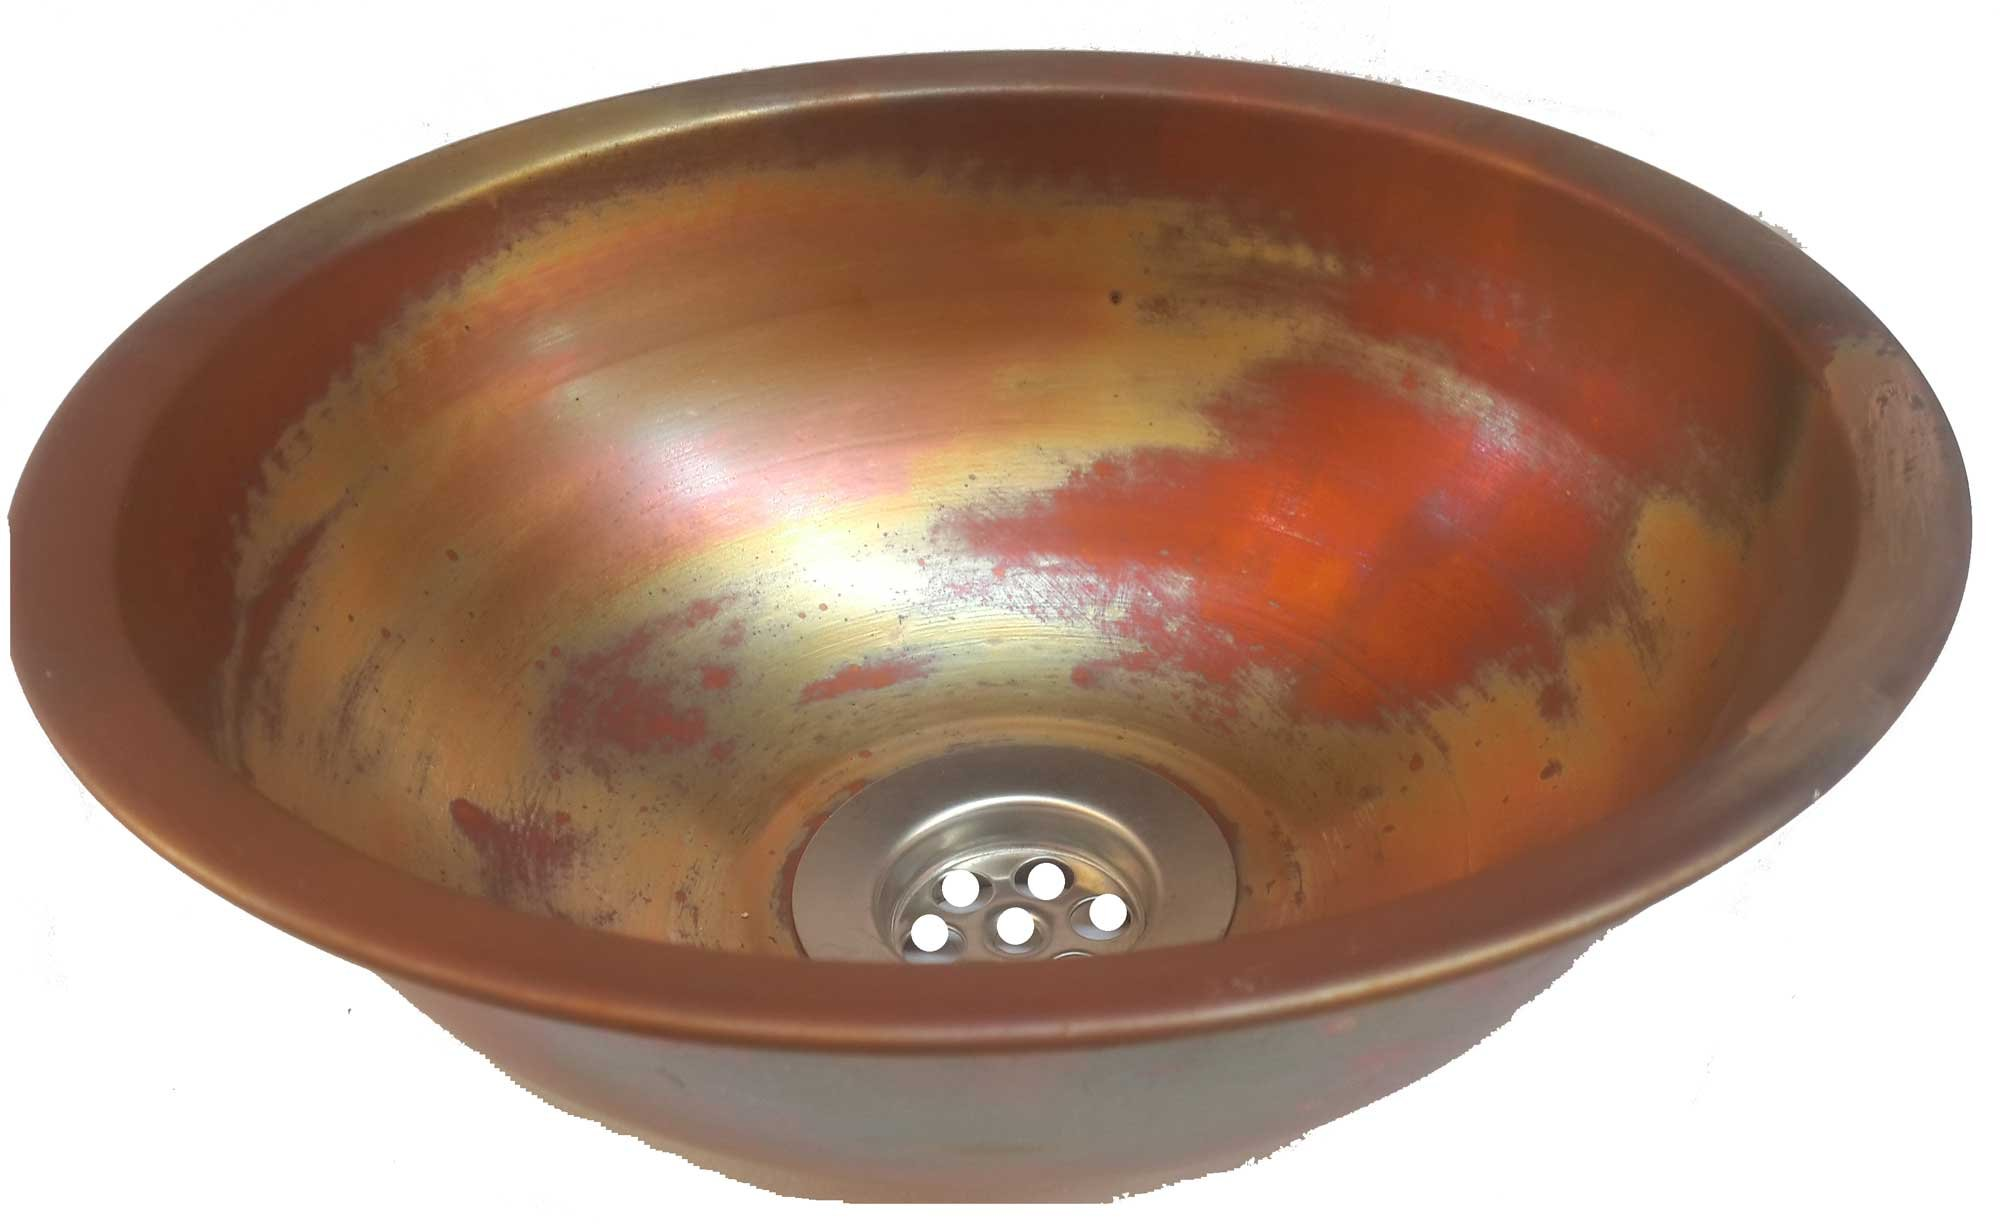 Egypt gift shops Satin Smooth Very Small Compact Copper Bowl Basin Toilet Bathroom Sink Lavatory Cabin Motor Van Caravan Portable Home Renovation by Egypt gift shops (Image #6)